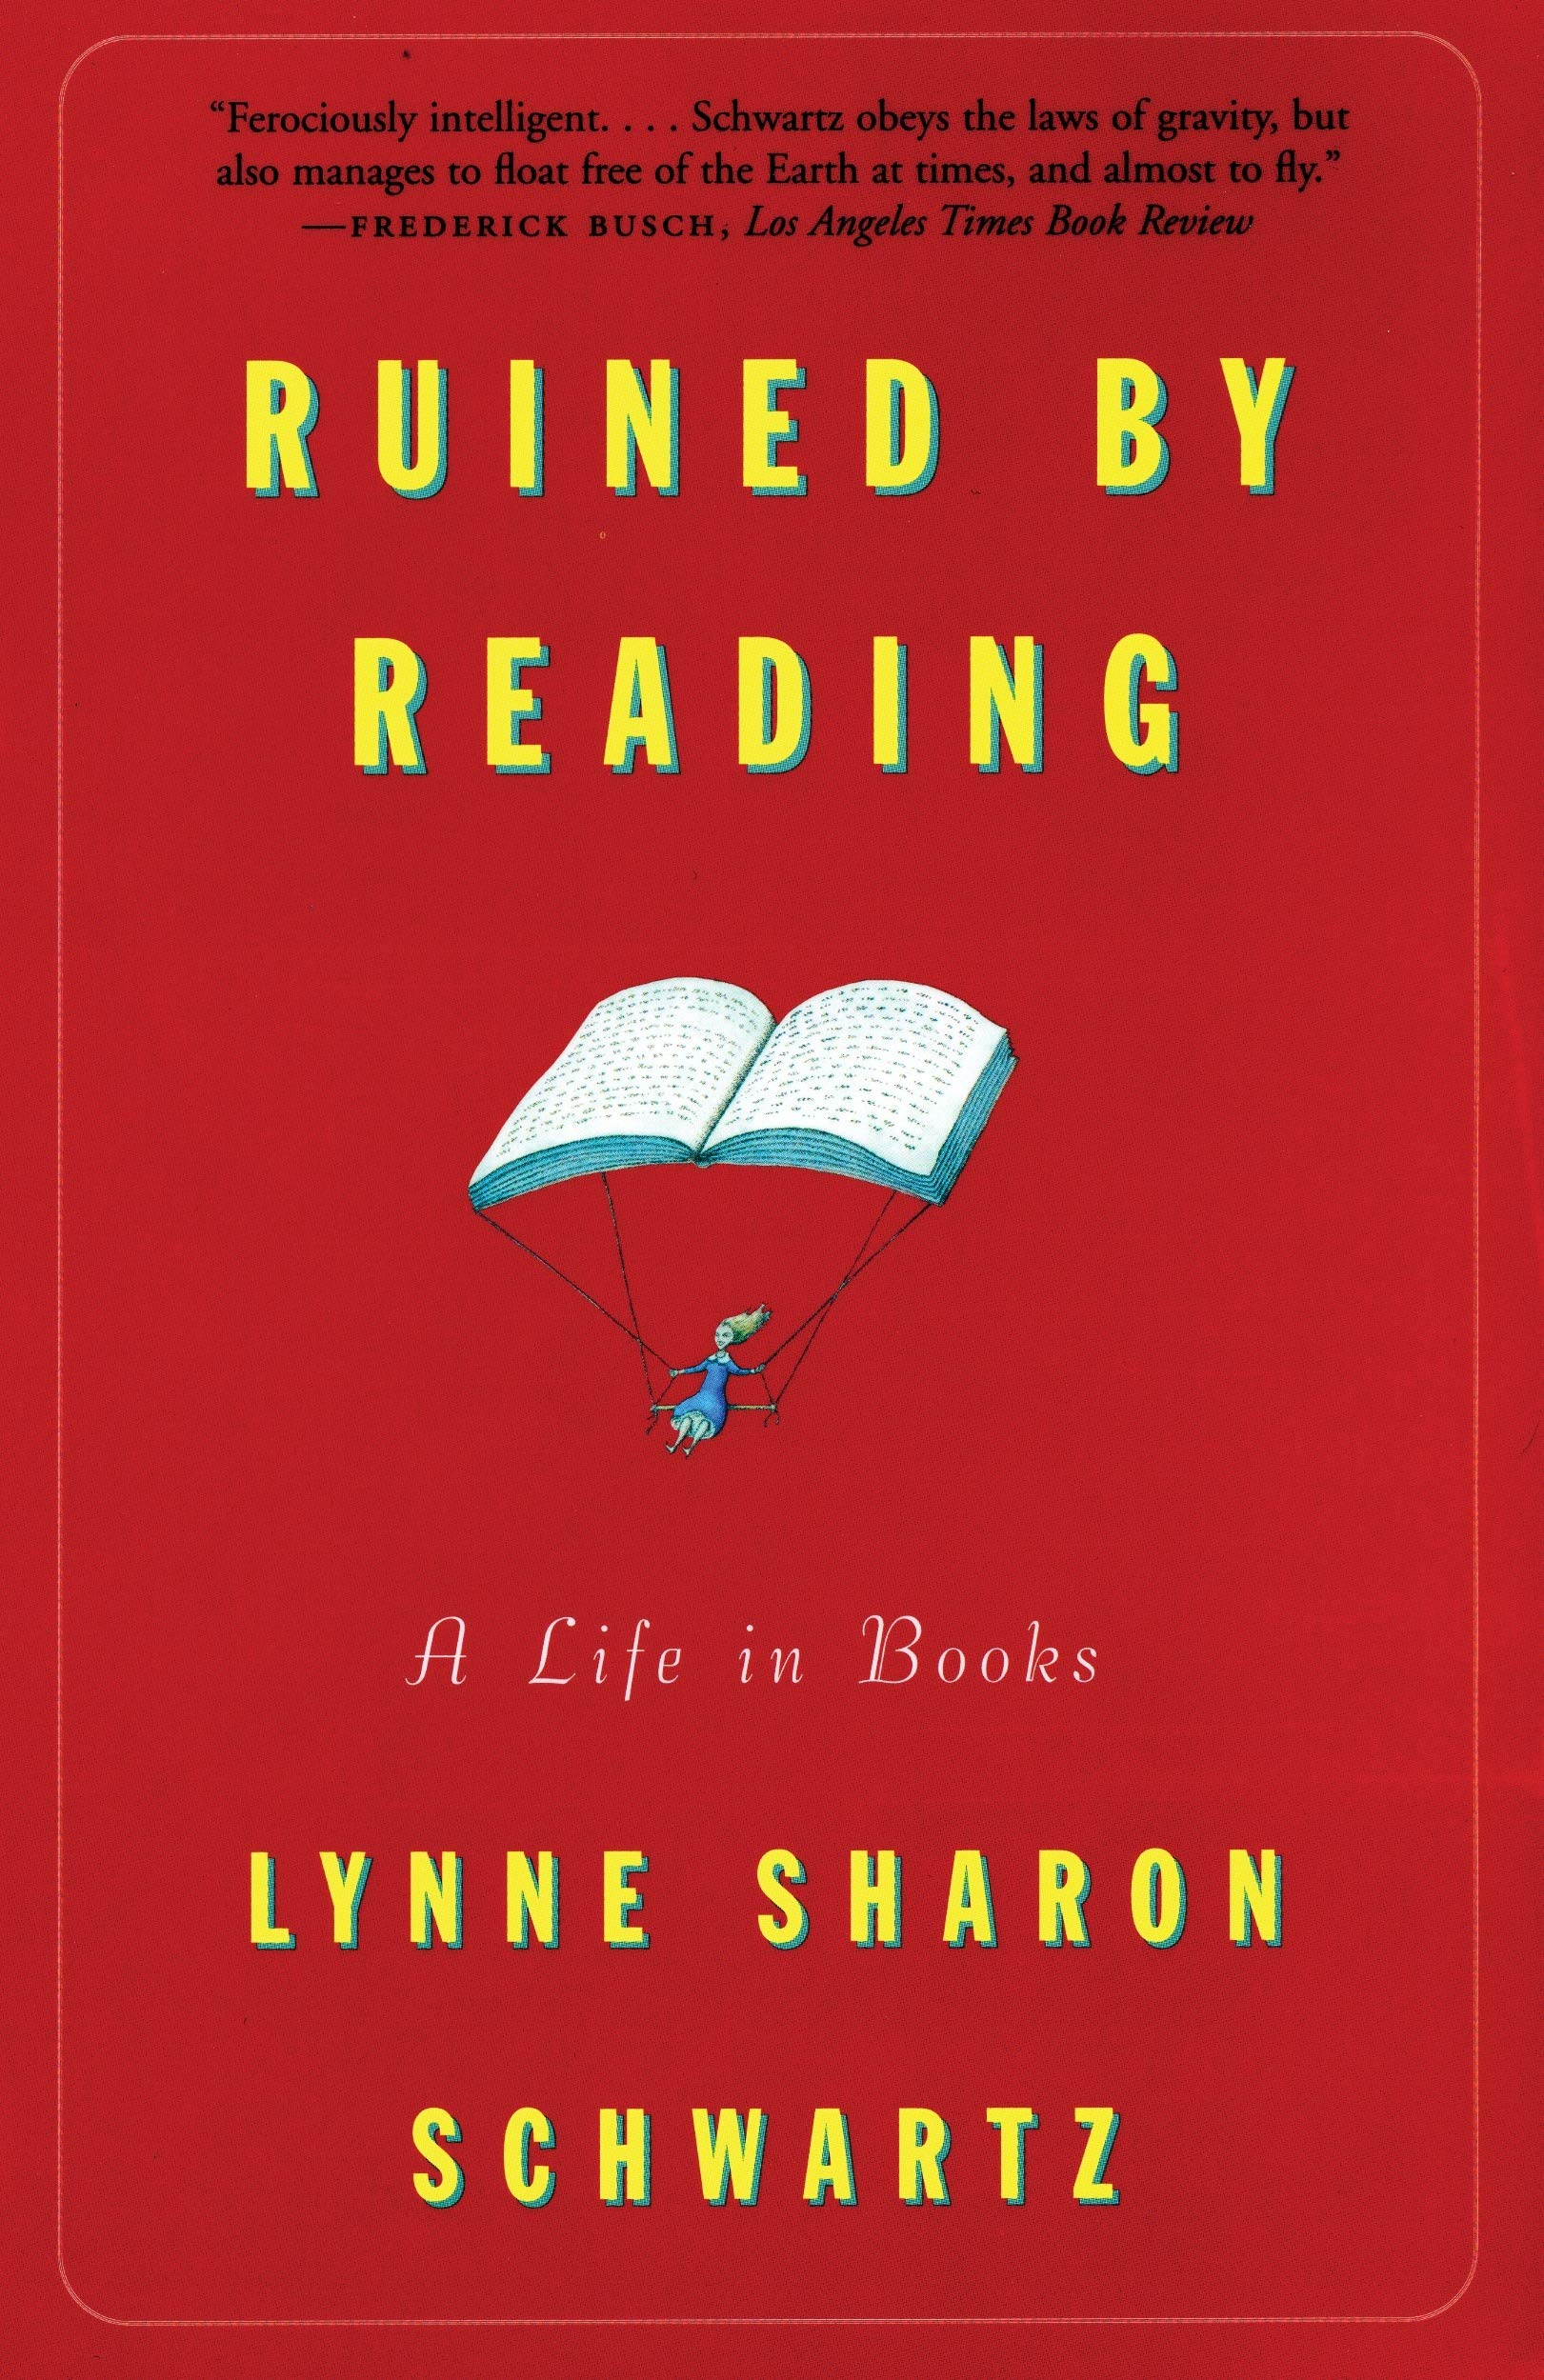 Ruined By Reading: A Life in Books: Lynne Sharon Schwartz: 9780807070833:  Amazon.com: Books